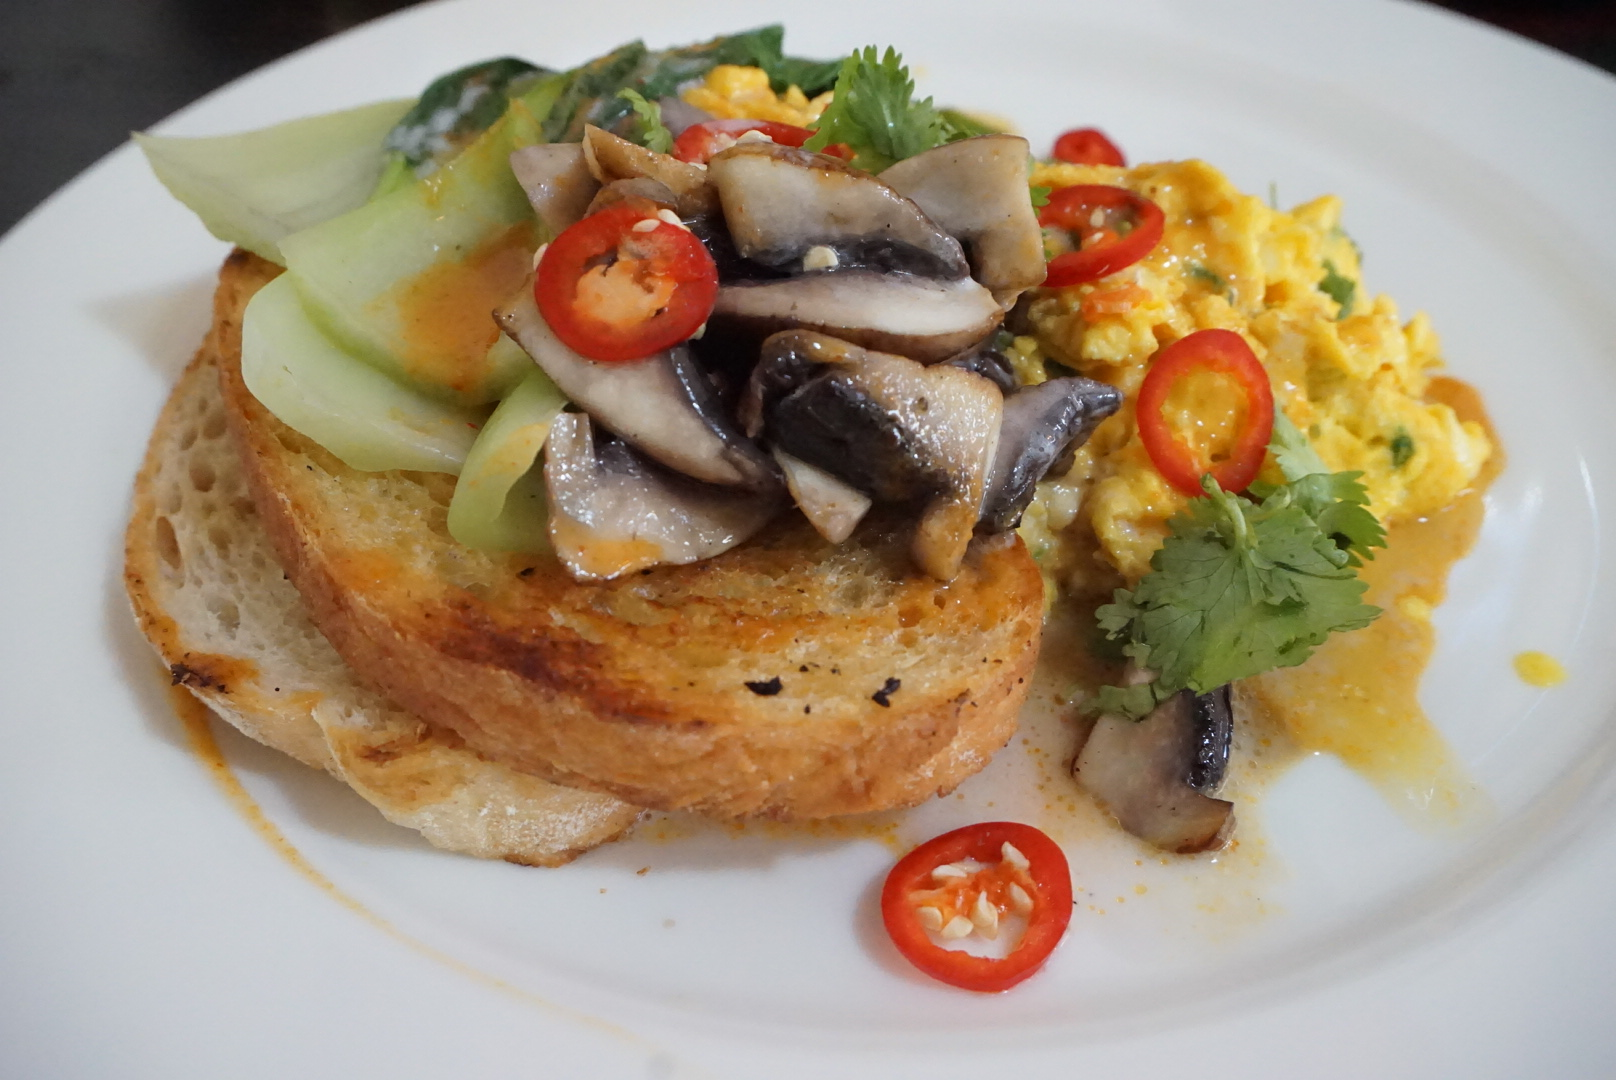 Scrambled eggs with cha-om, mushroom, bok choy, mild curry sauce on sour dough bread ($16)